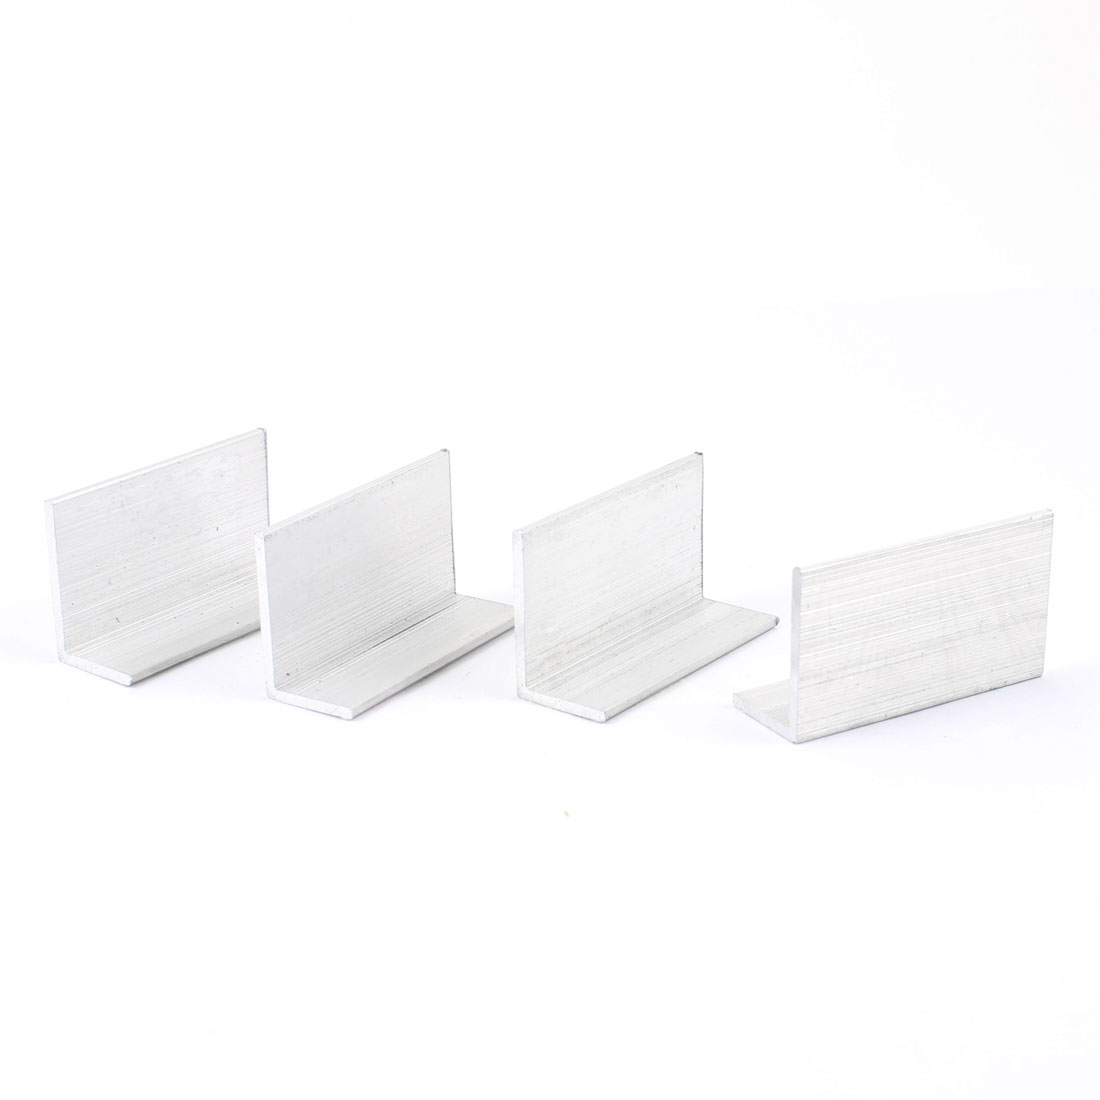 4 Pcs Right Angle Aluminum Alloy Shelf Corner Bracket 45mm x 16mm x 26mm